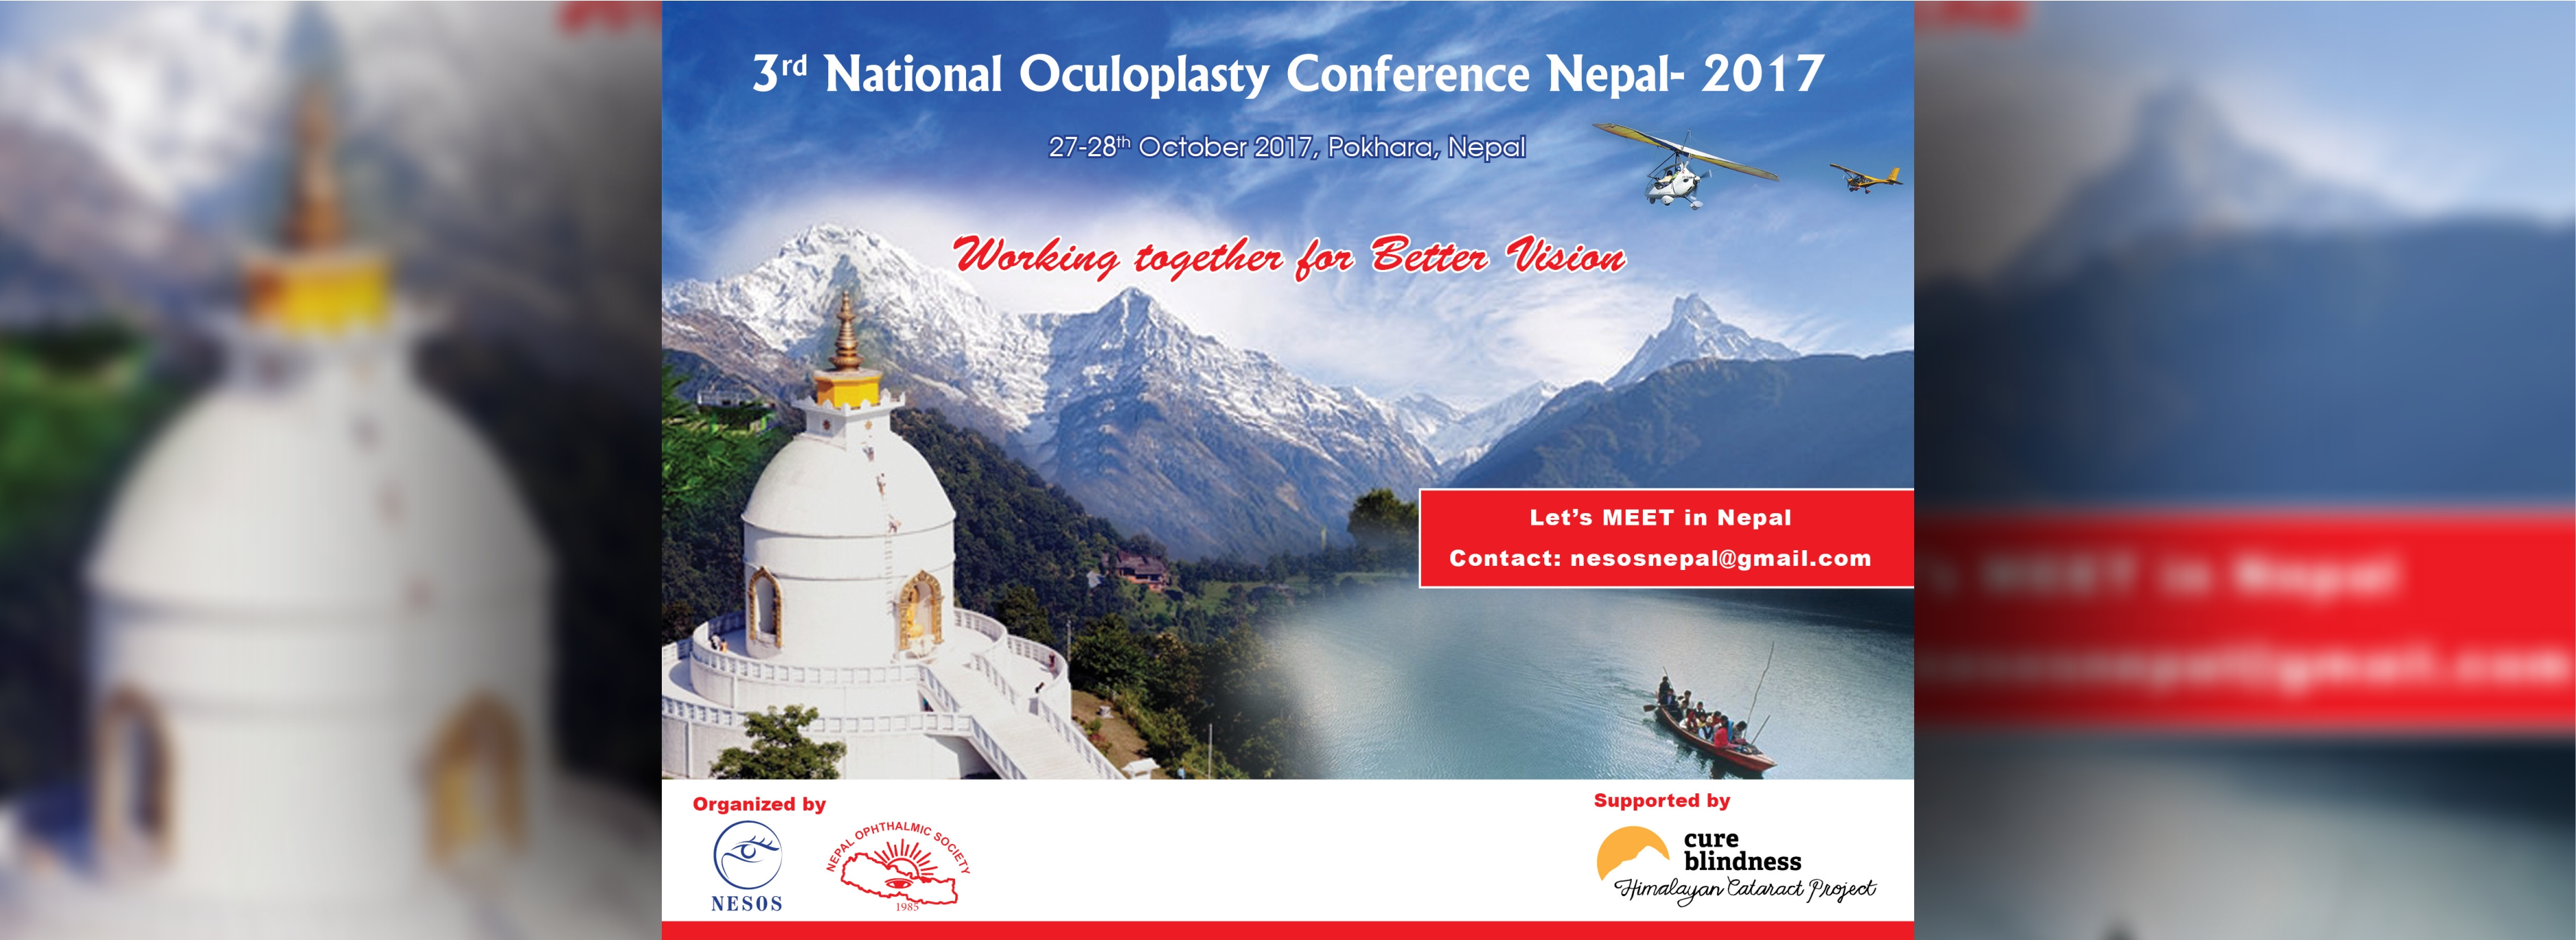 3rd National Oculoplasty Conference Nepal- 2017